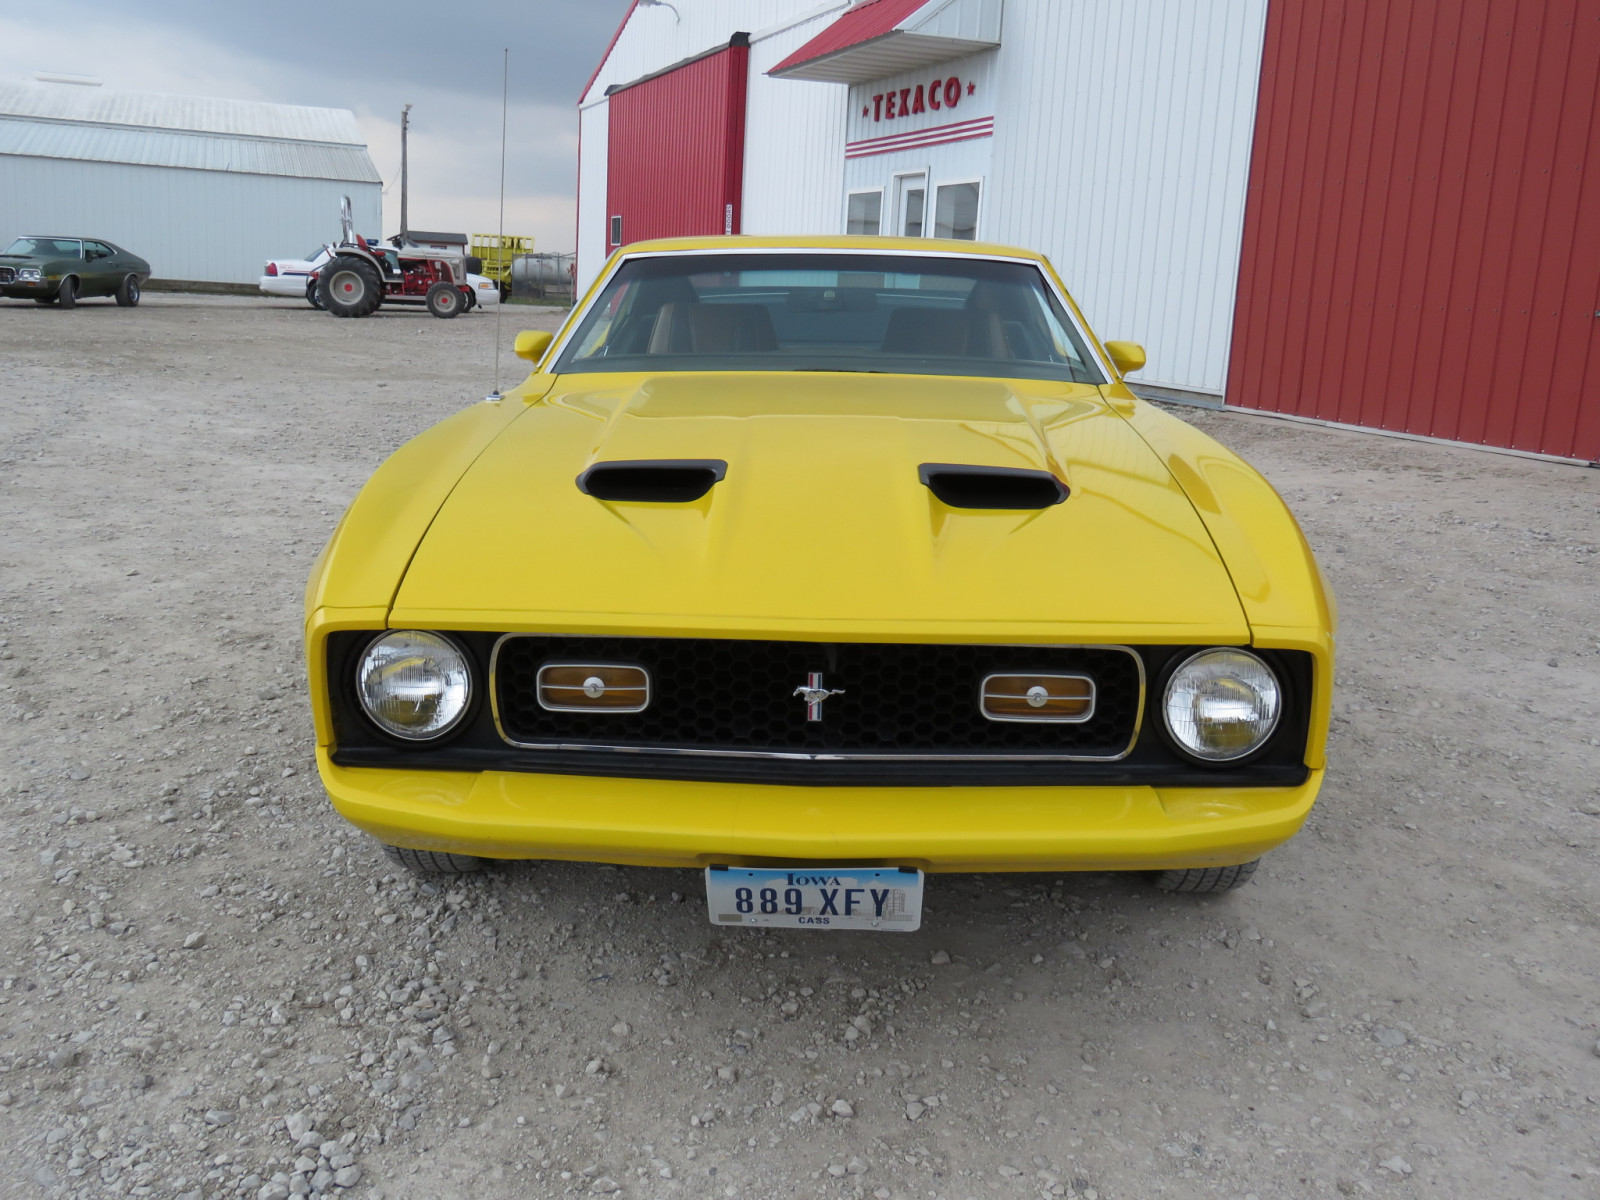 1973 Ford Mach 1 Mustang Coupe - Image 2